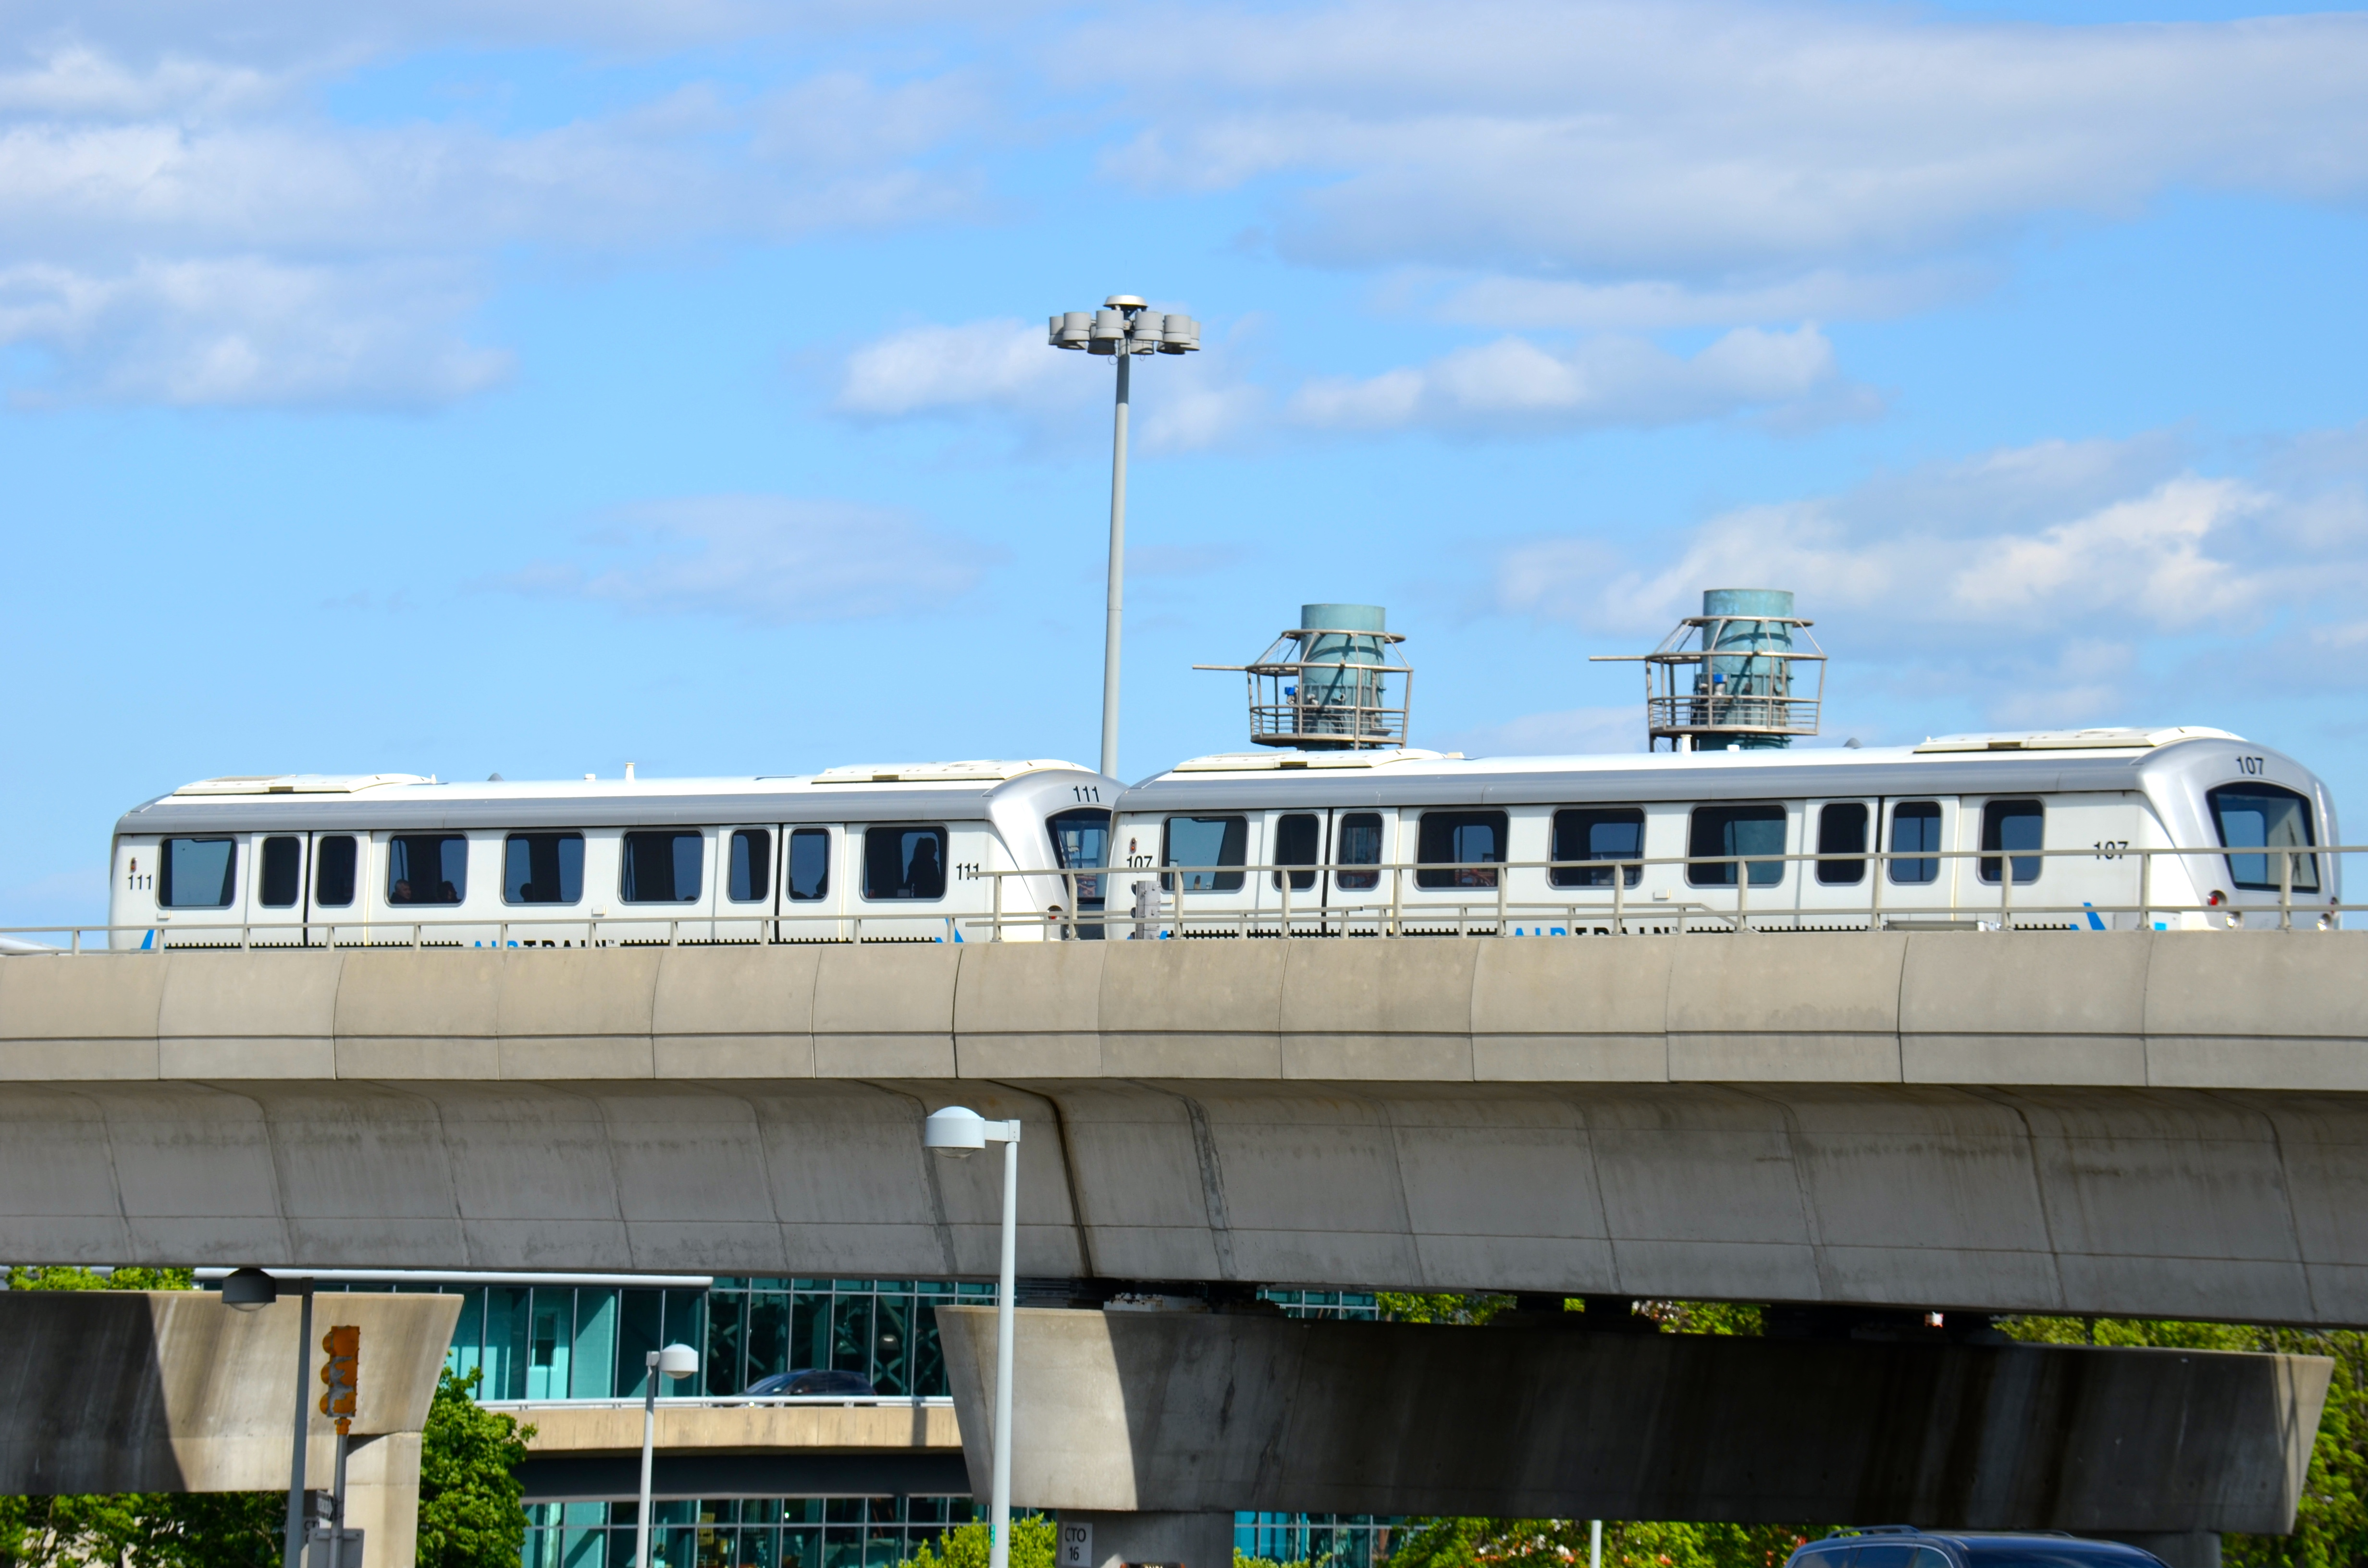 How To Get To Long Island Railroad From Jfk